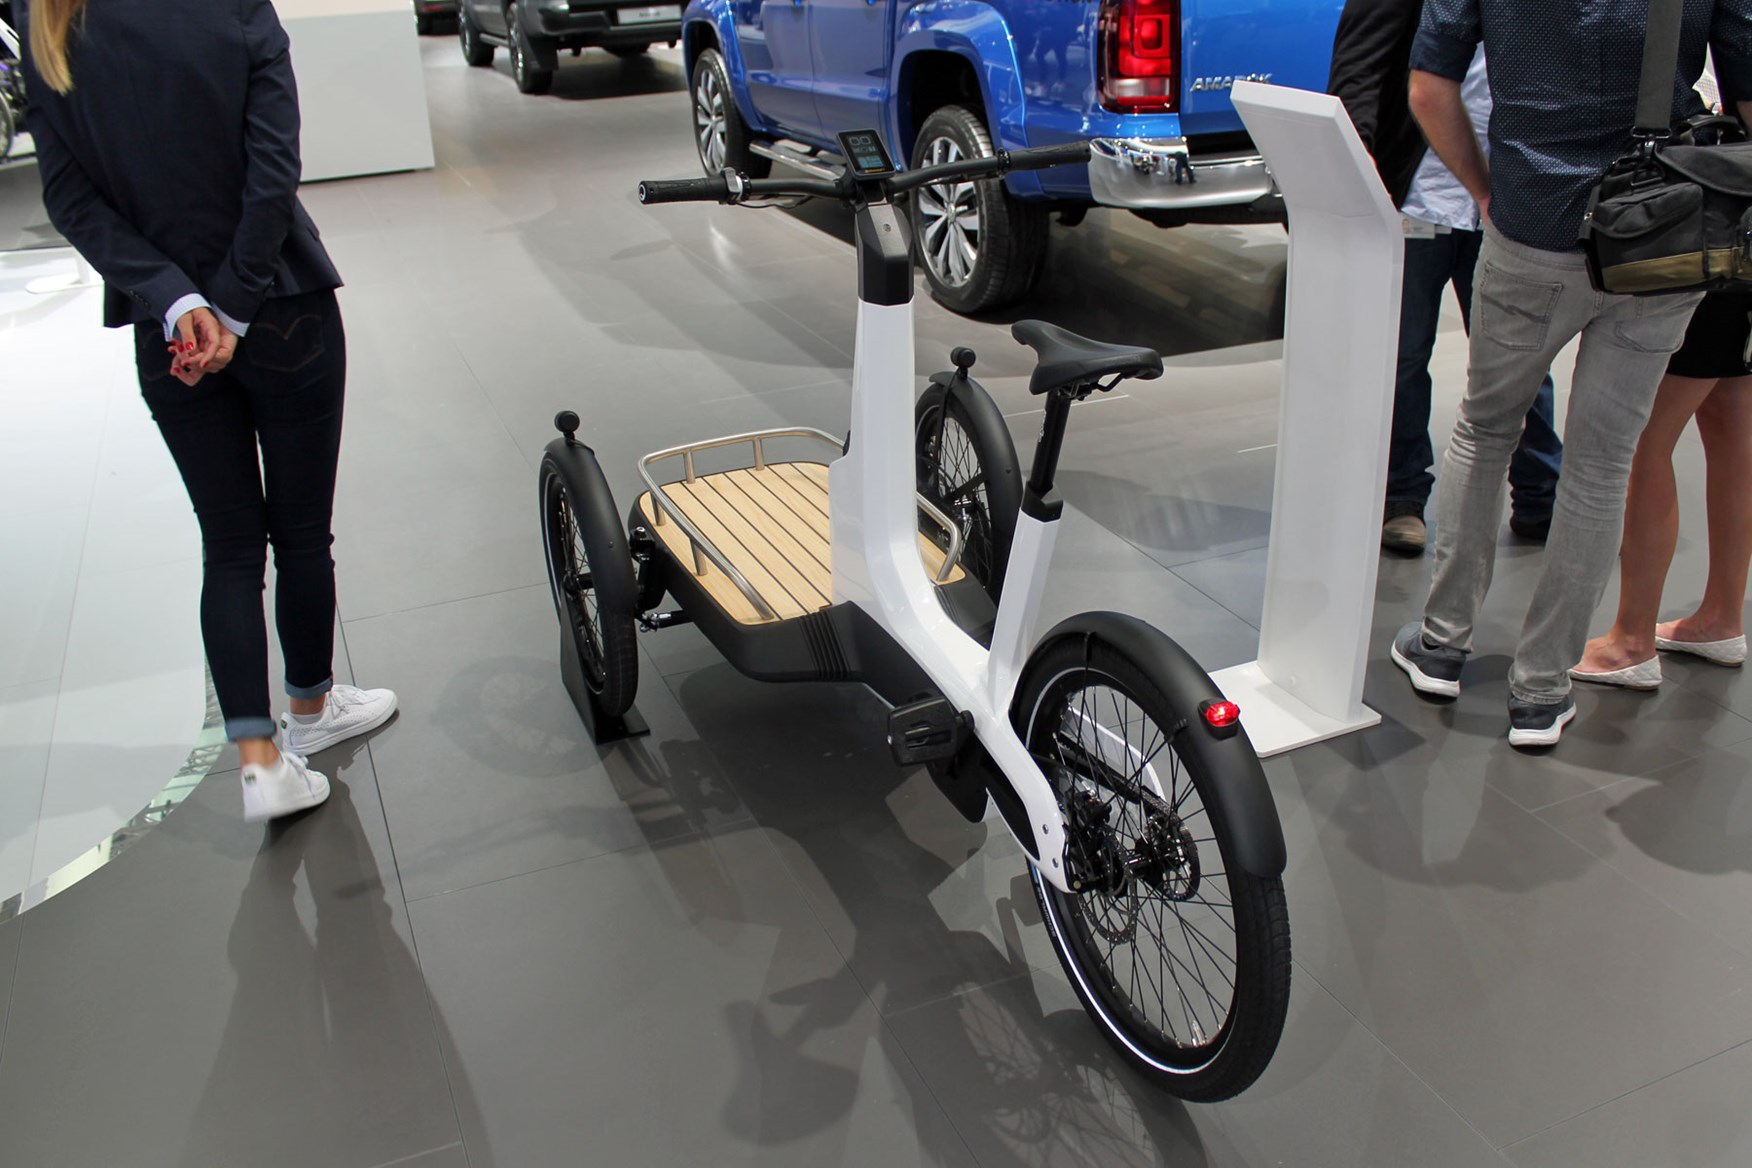 Small Cargo Vans >> VW Cargo e-Bike – the ultimate eco-friendly last-mile delivery solution? | Parkers